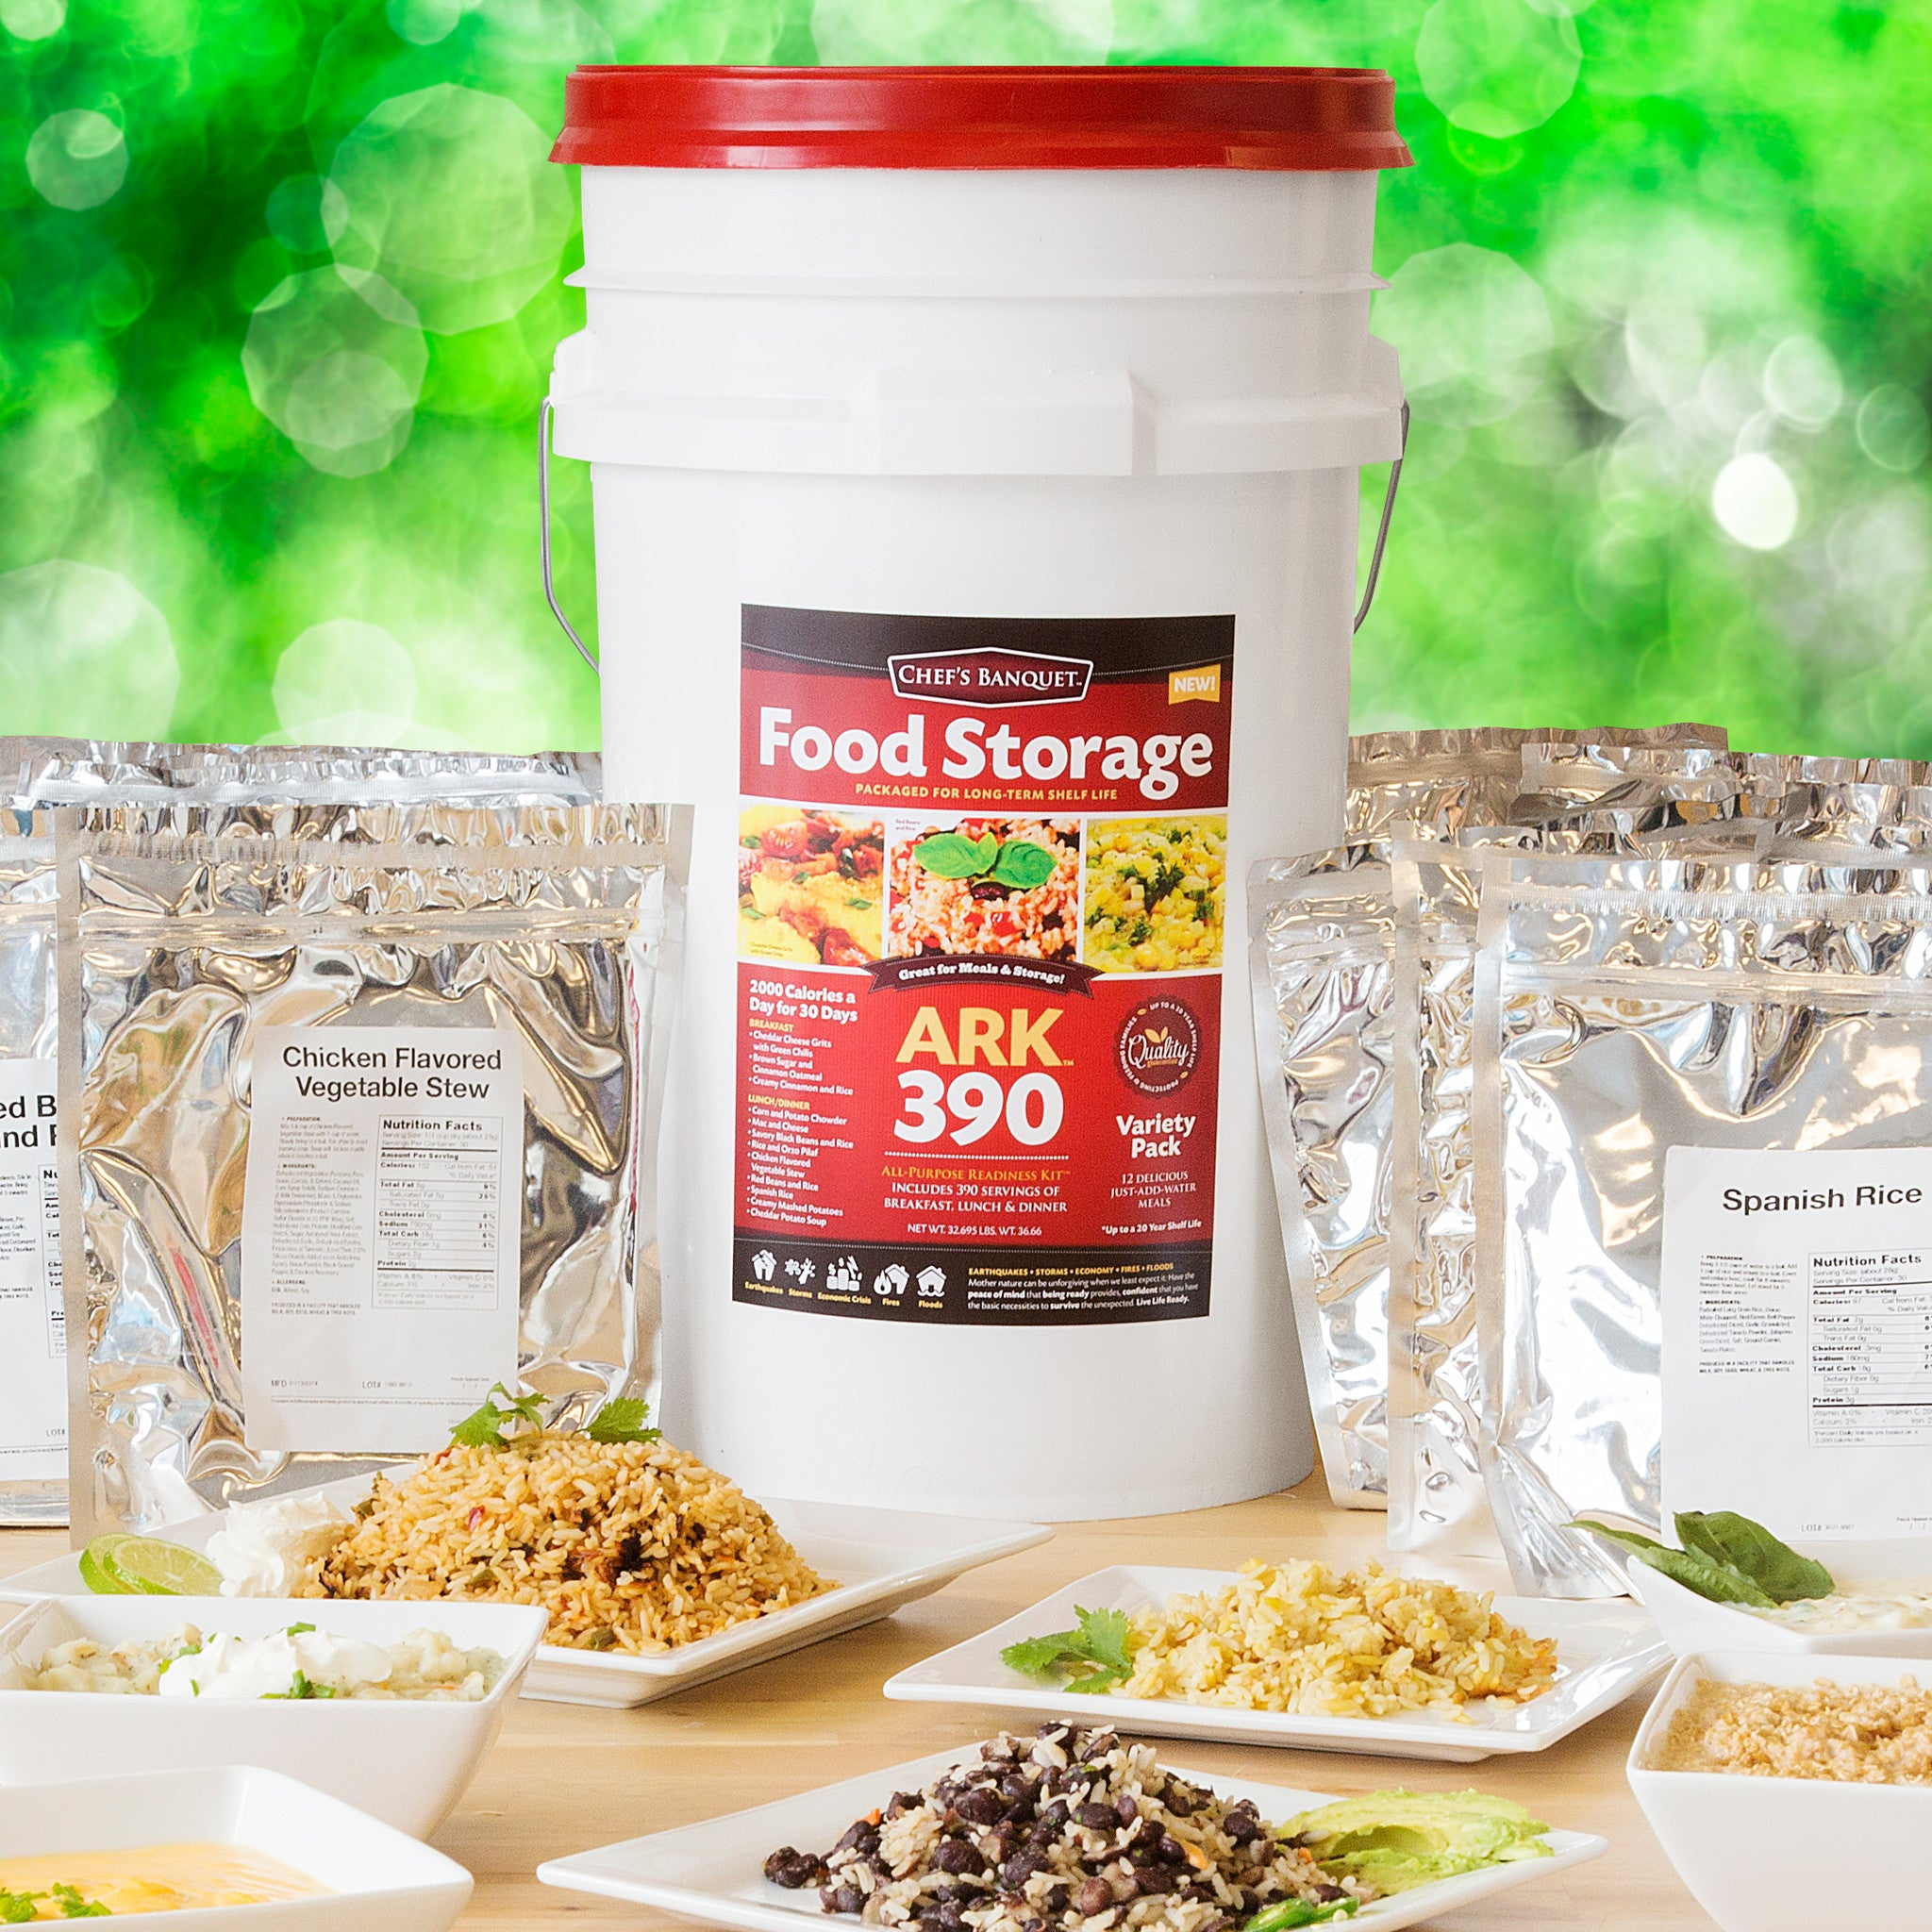 Ark 390 food storage kit by chefs banquet ready project spanish rice ark 390 food storage kit by chefs banquet forumfinder Image collections